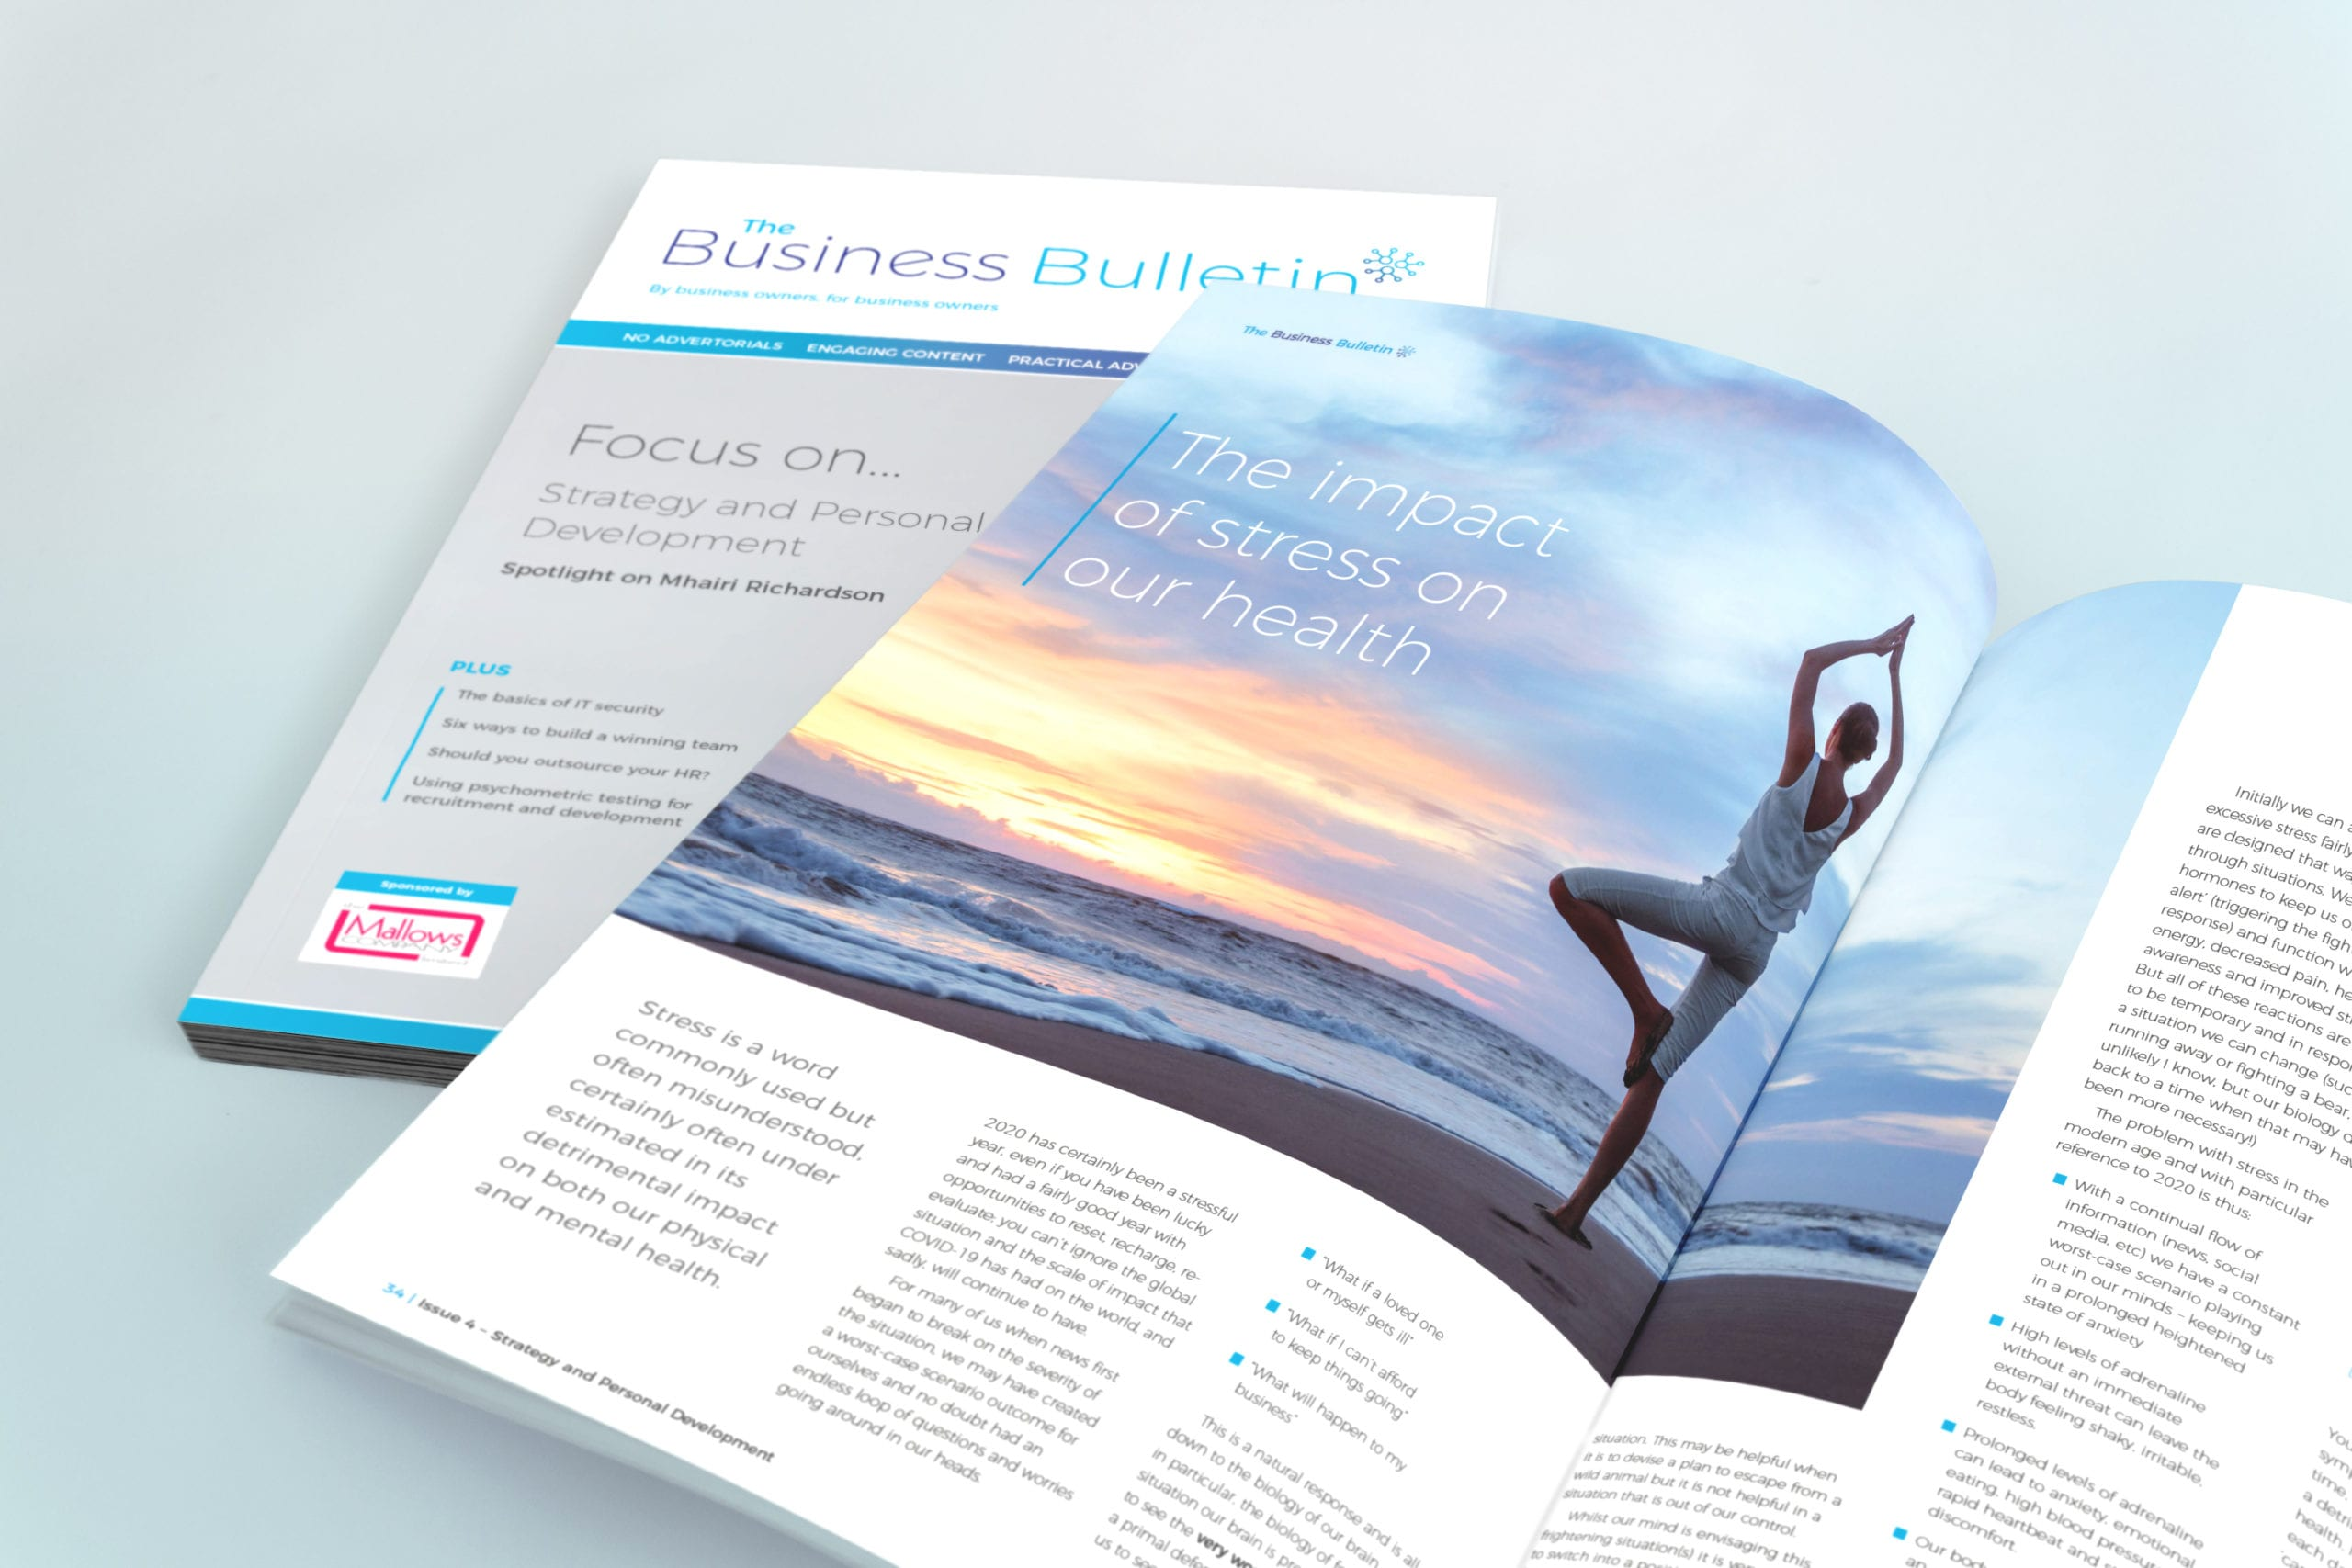 Design for strategy and personal development magazine